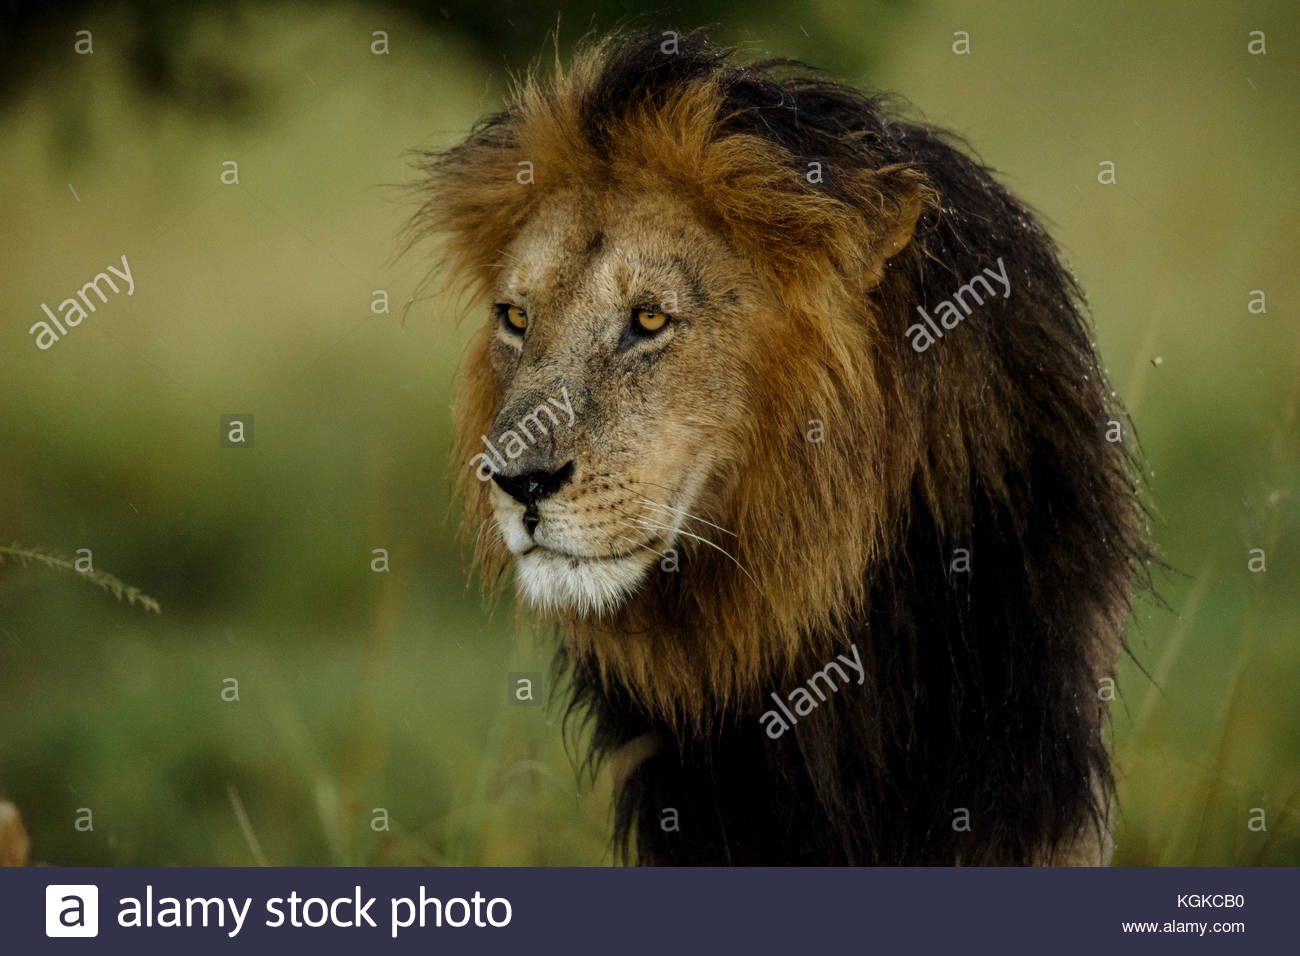 Portrait of a male lion, Panthera leo, in the Masai Mara National Reserve. - Stock Image